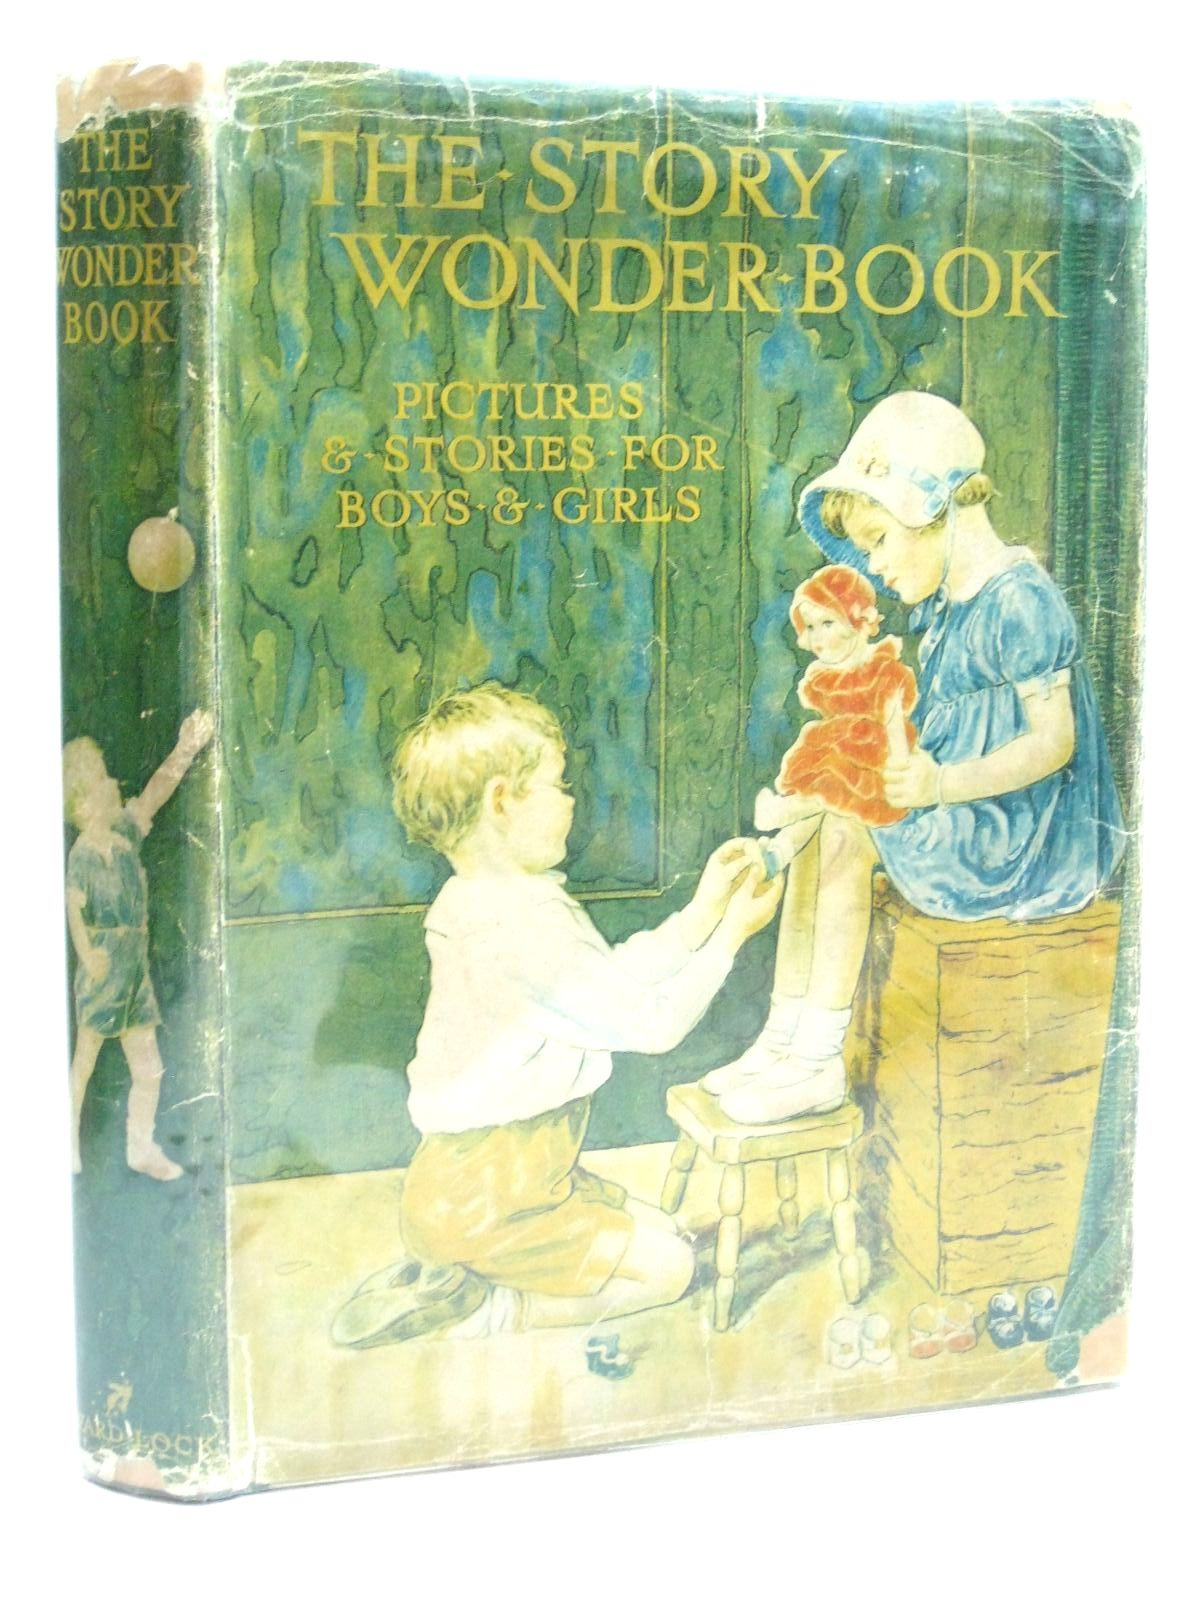 Photo of THE STORY WONDER BOOK FOR BOYS AND GIRLS written by Golding, Harry<br />Wynne, May<br />Anderson, Anne<br />Talbot, Ethel<br />et al, illustrated by Jones, Grace<br />Pearse, S.B.<br />Tarrant, Margaret<br />Topham, Inez<br />et al., published by Ward, Lock & Co. Ltd. (STOCK CODE: 1505990)  for sale by Stella & Rose's Books